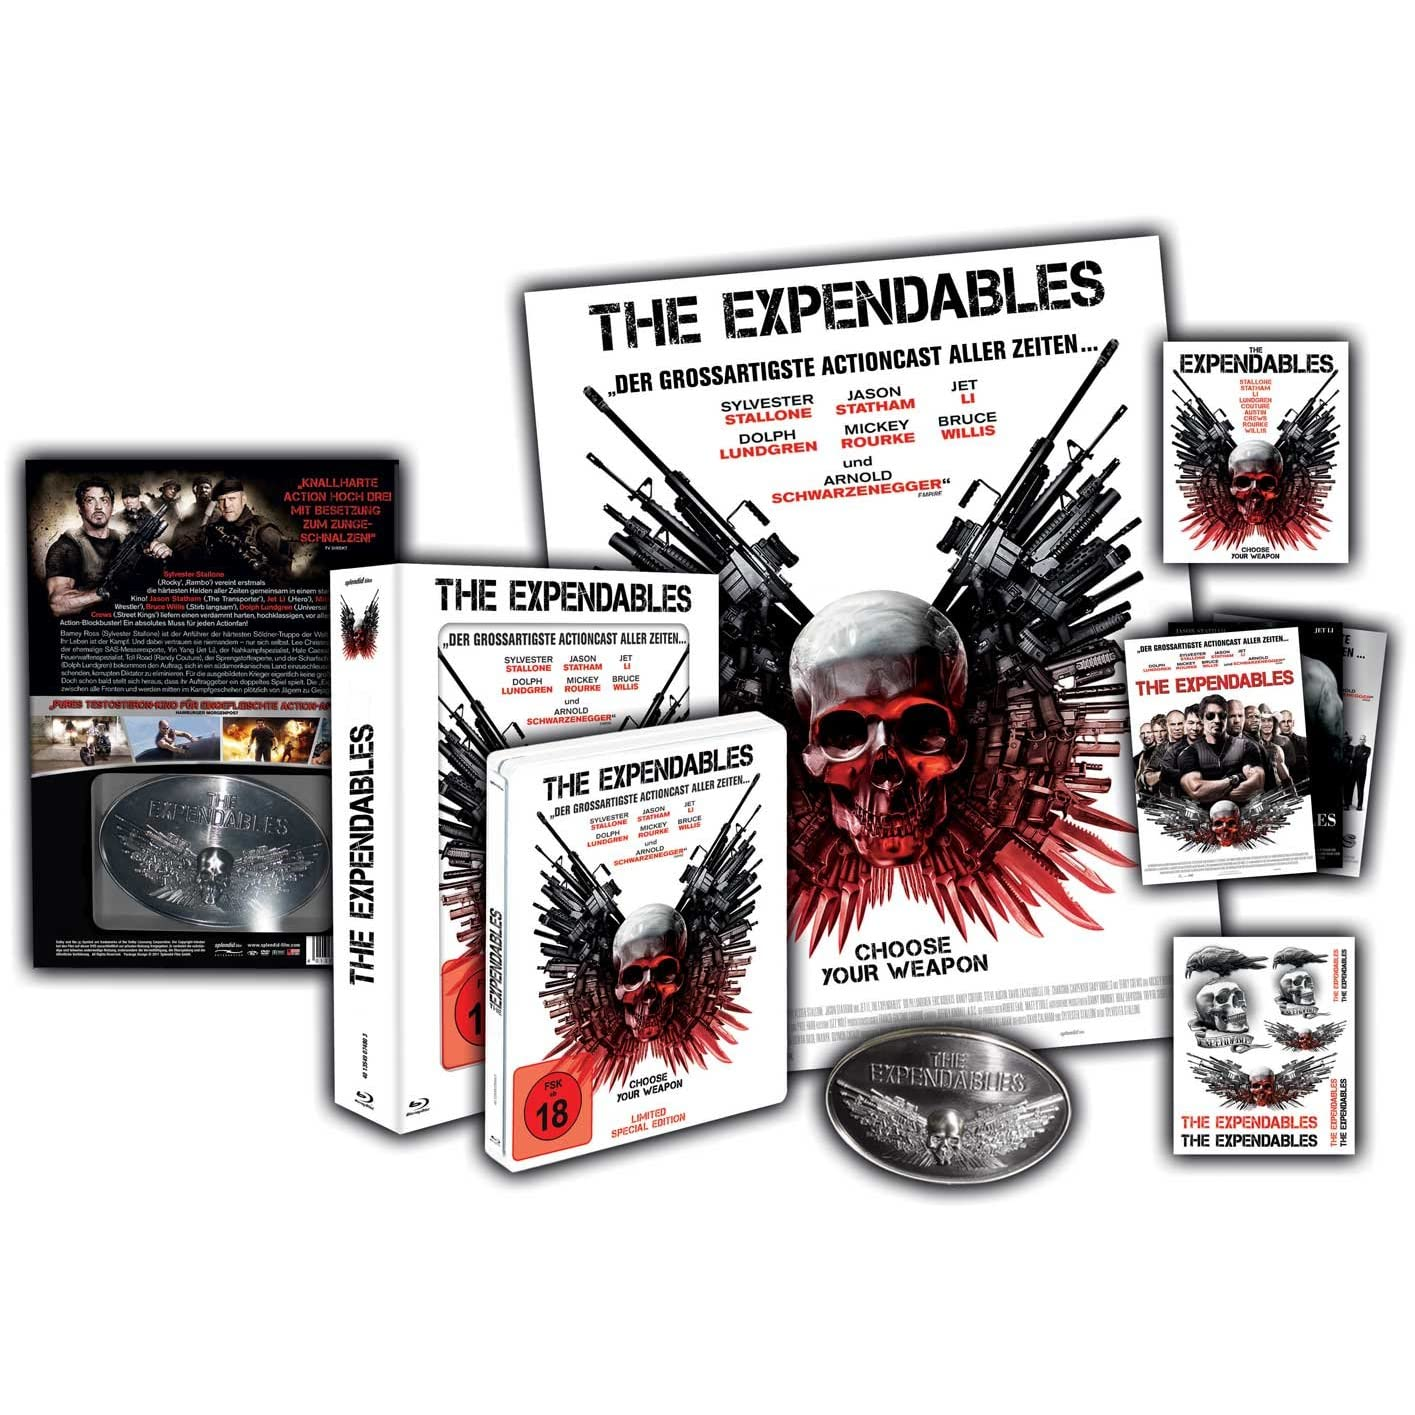 DVD/BLU RAY THE EXPENDABLES - Page 6 81YQvjKcinL._AA1415_